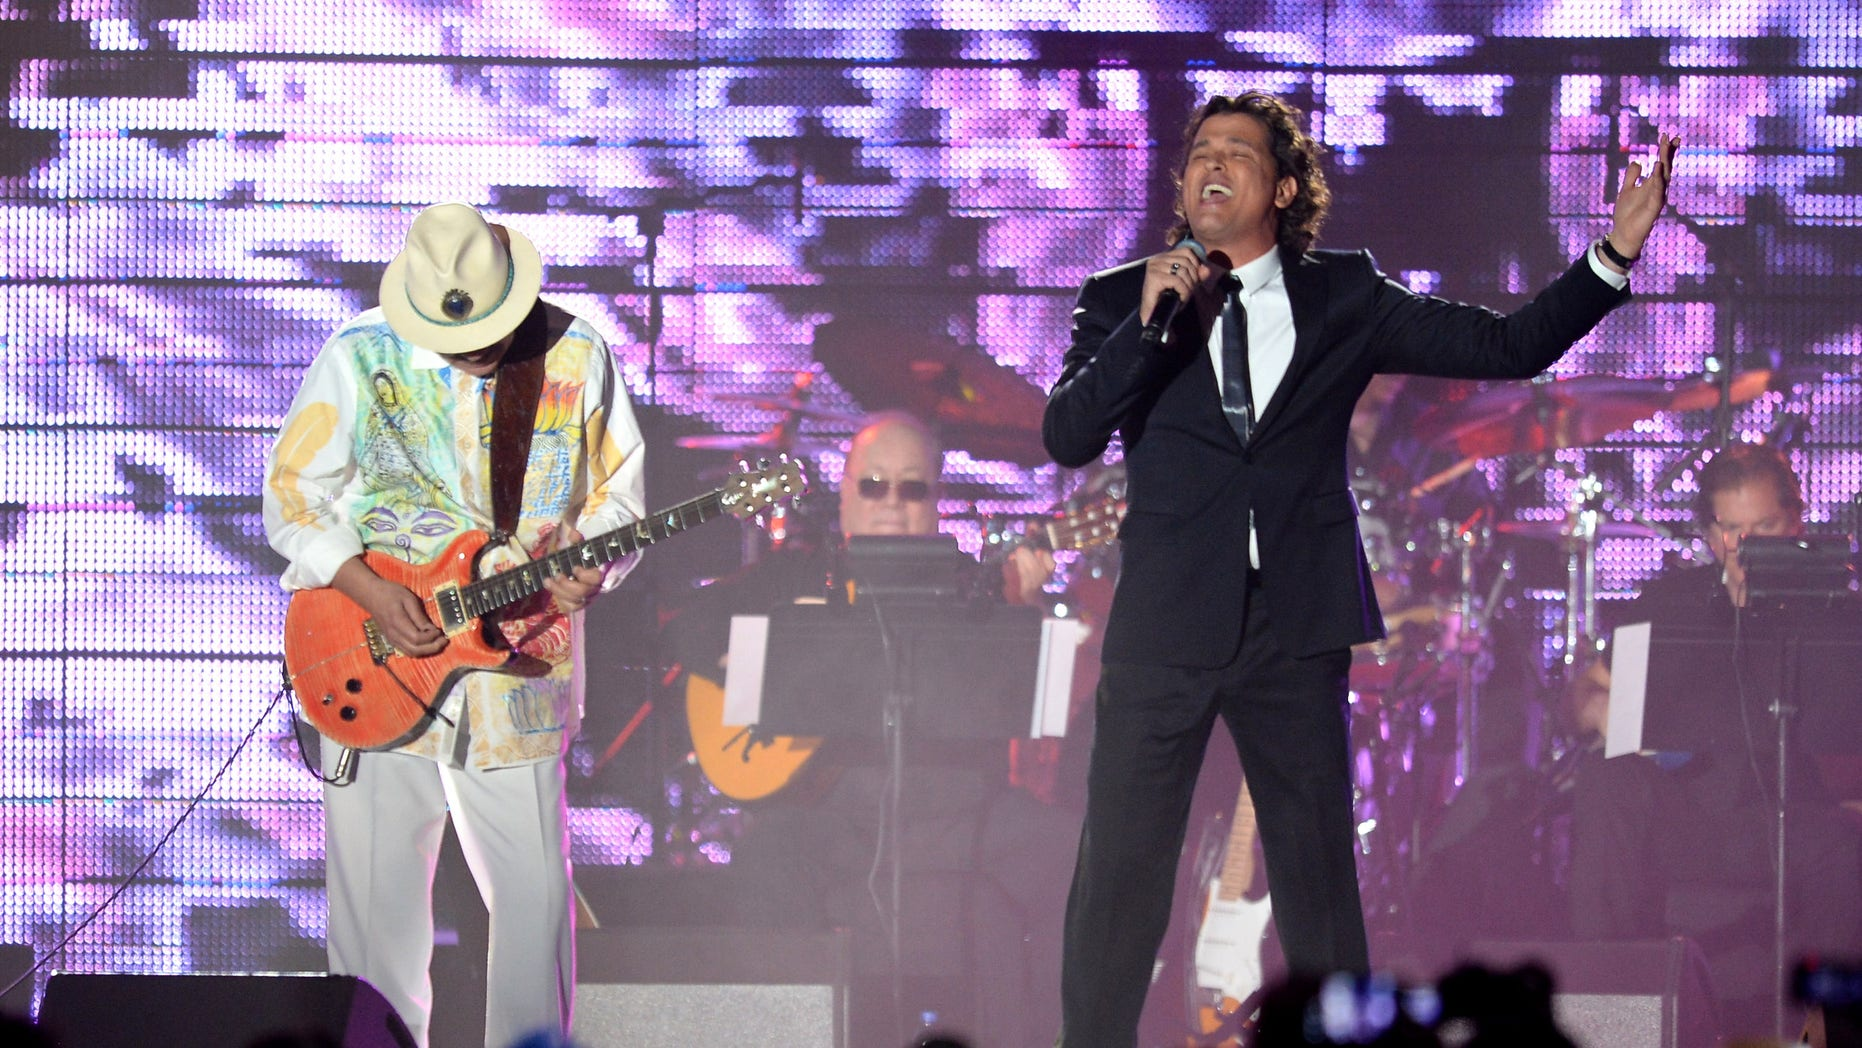 Carlos Santana and singer Carlos Vives during the 2013 Latin Recording Academy Person Of The Year honoring Miguel Bose at the Mandalay Bay Events Center on November 20, 2013 in Las Vegas, Nevada.